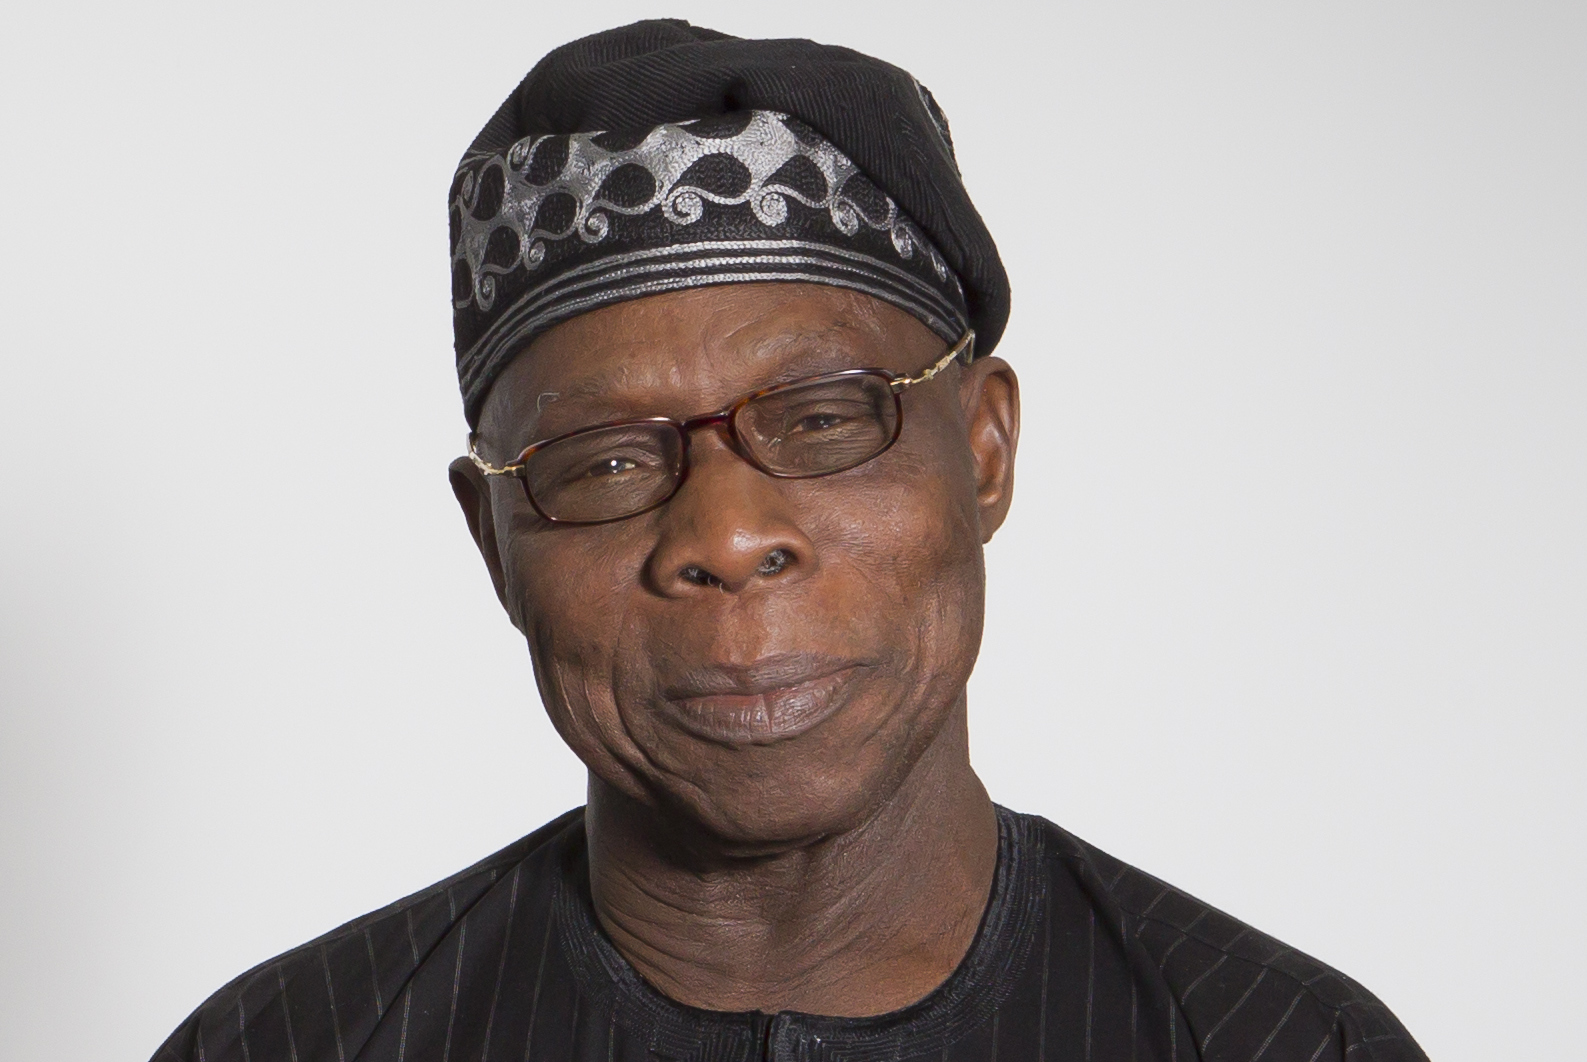 Obasanjo Throws Heavy Shade - A President That Came After Me Signs Documents Without Reading